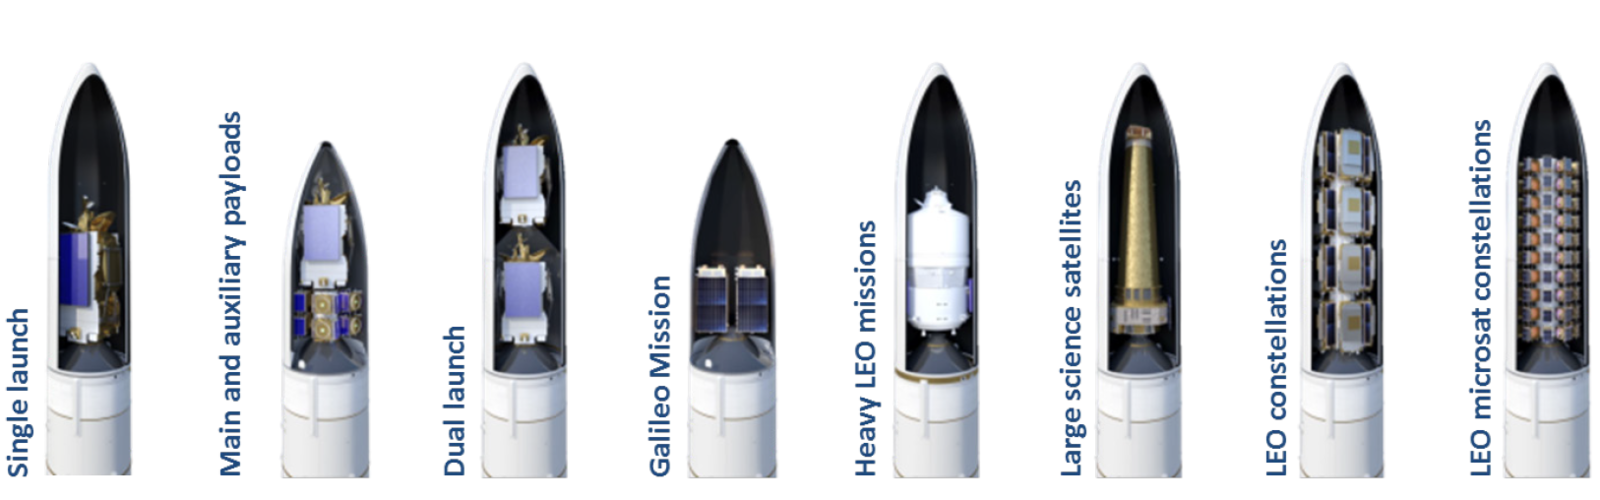 Ariane 6 possible missions and configurations